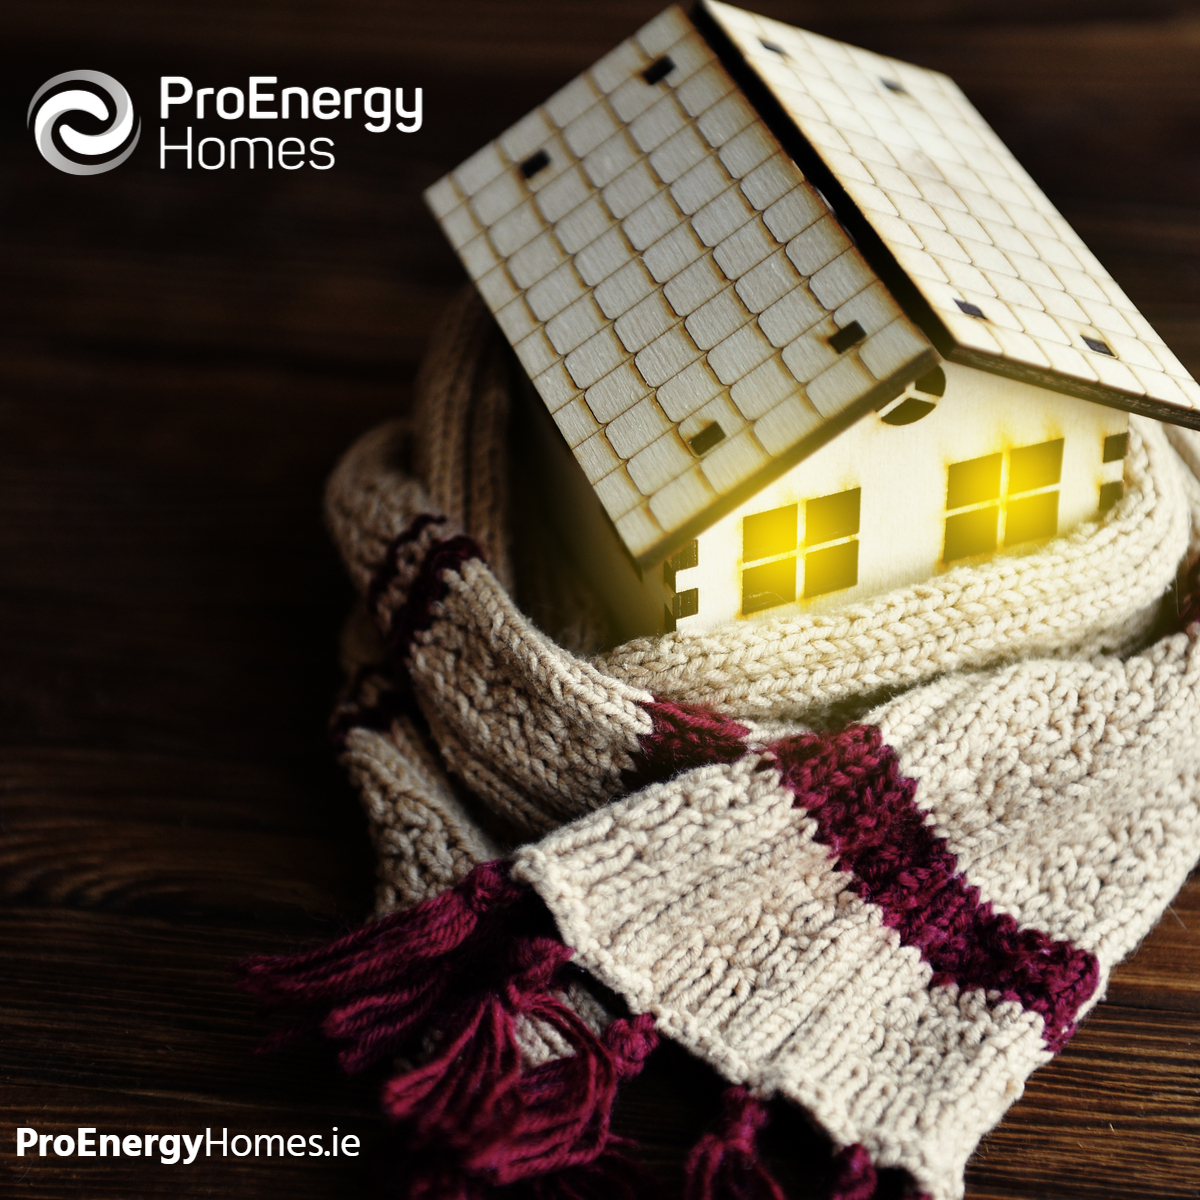 Nationwide rollout planned for a 'one-stop-shop' home energy upgrade scheme